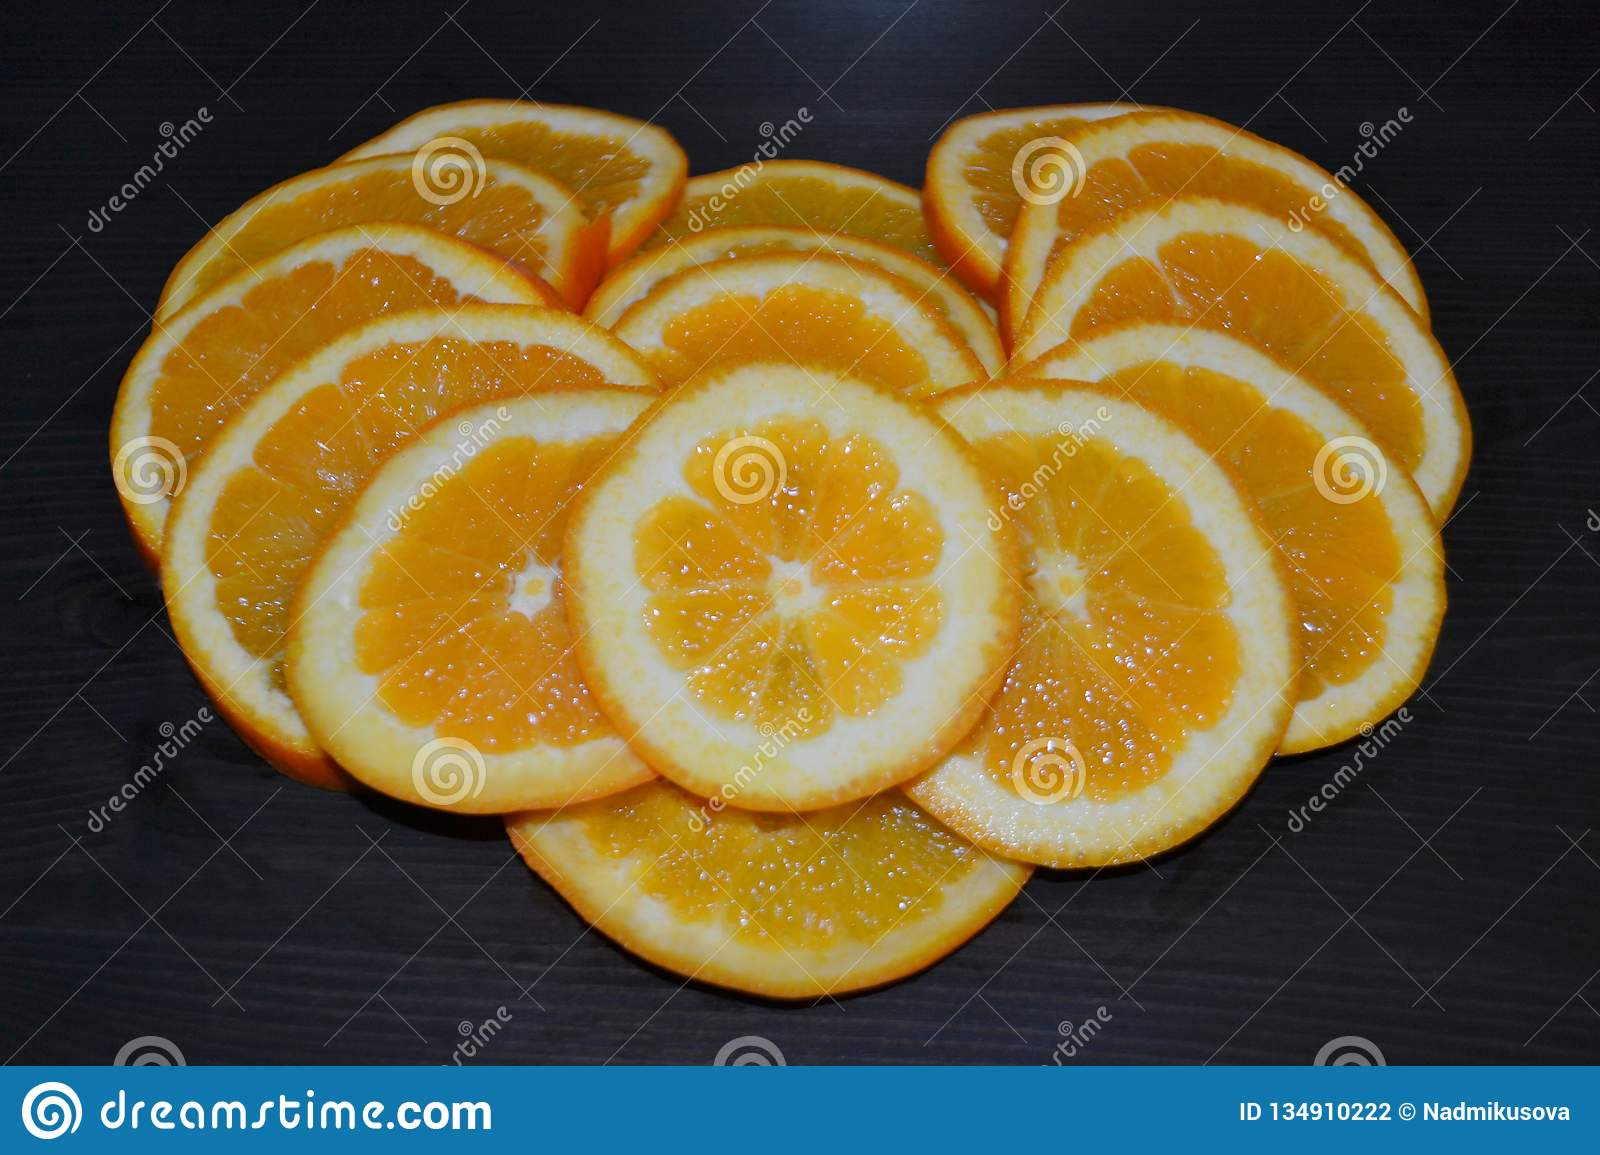 Artistic composition of slices of ripe oranges posed in a shape of a heart on wooden background.